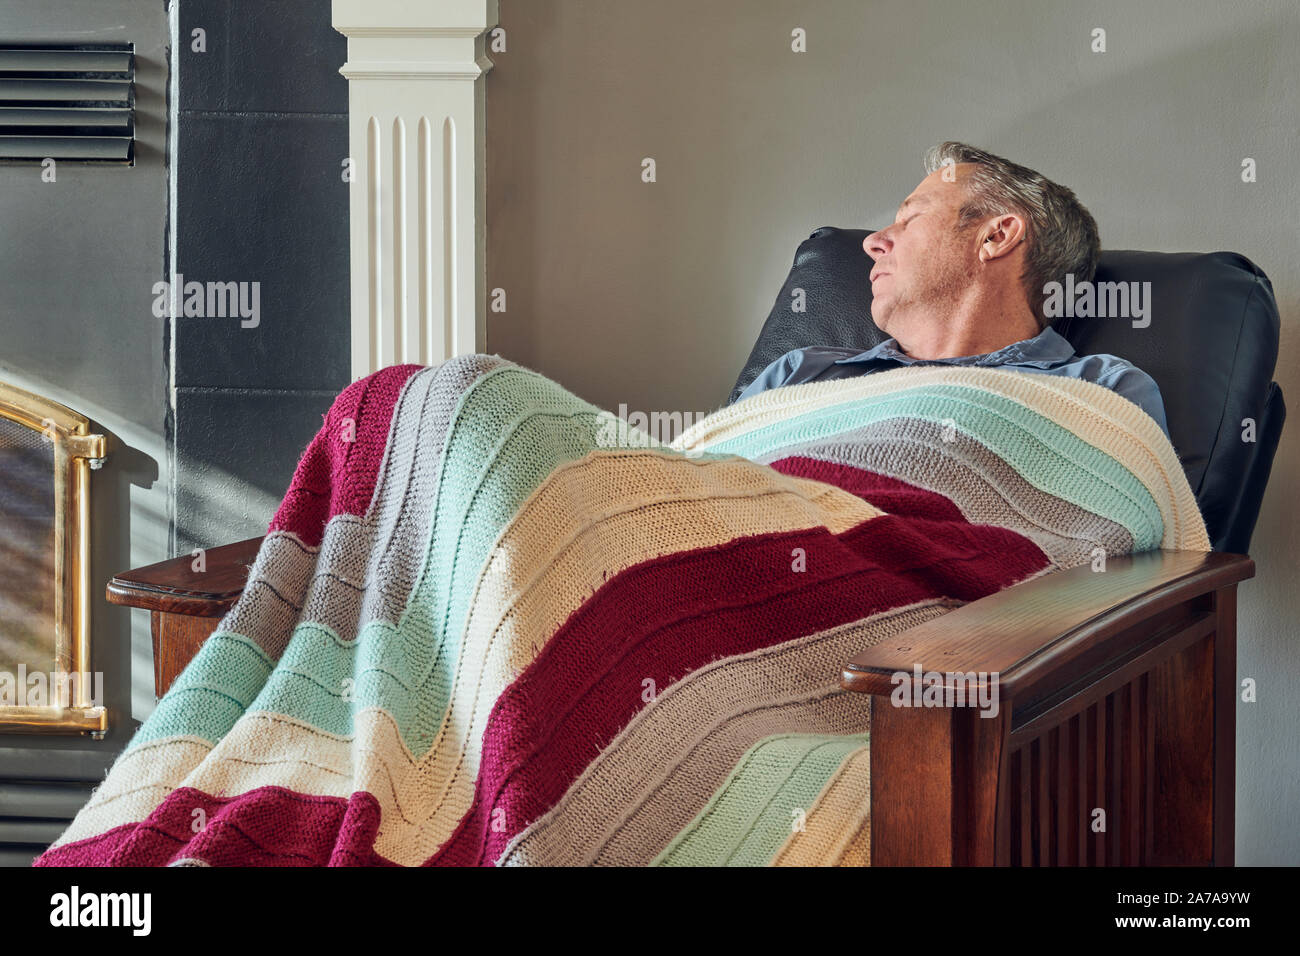 Old Recliner Chair High Resolution Stock Photography And Images Alamy